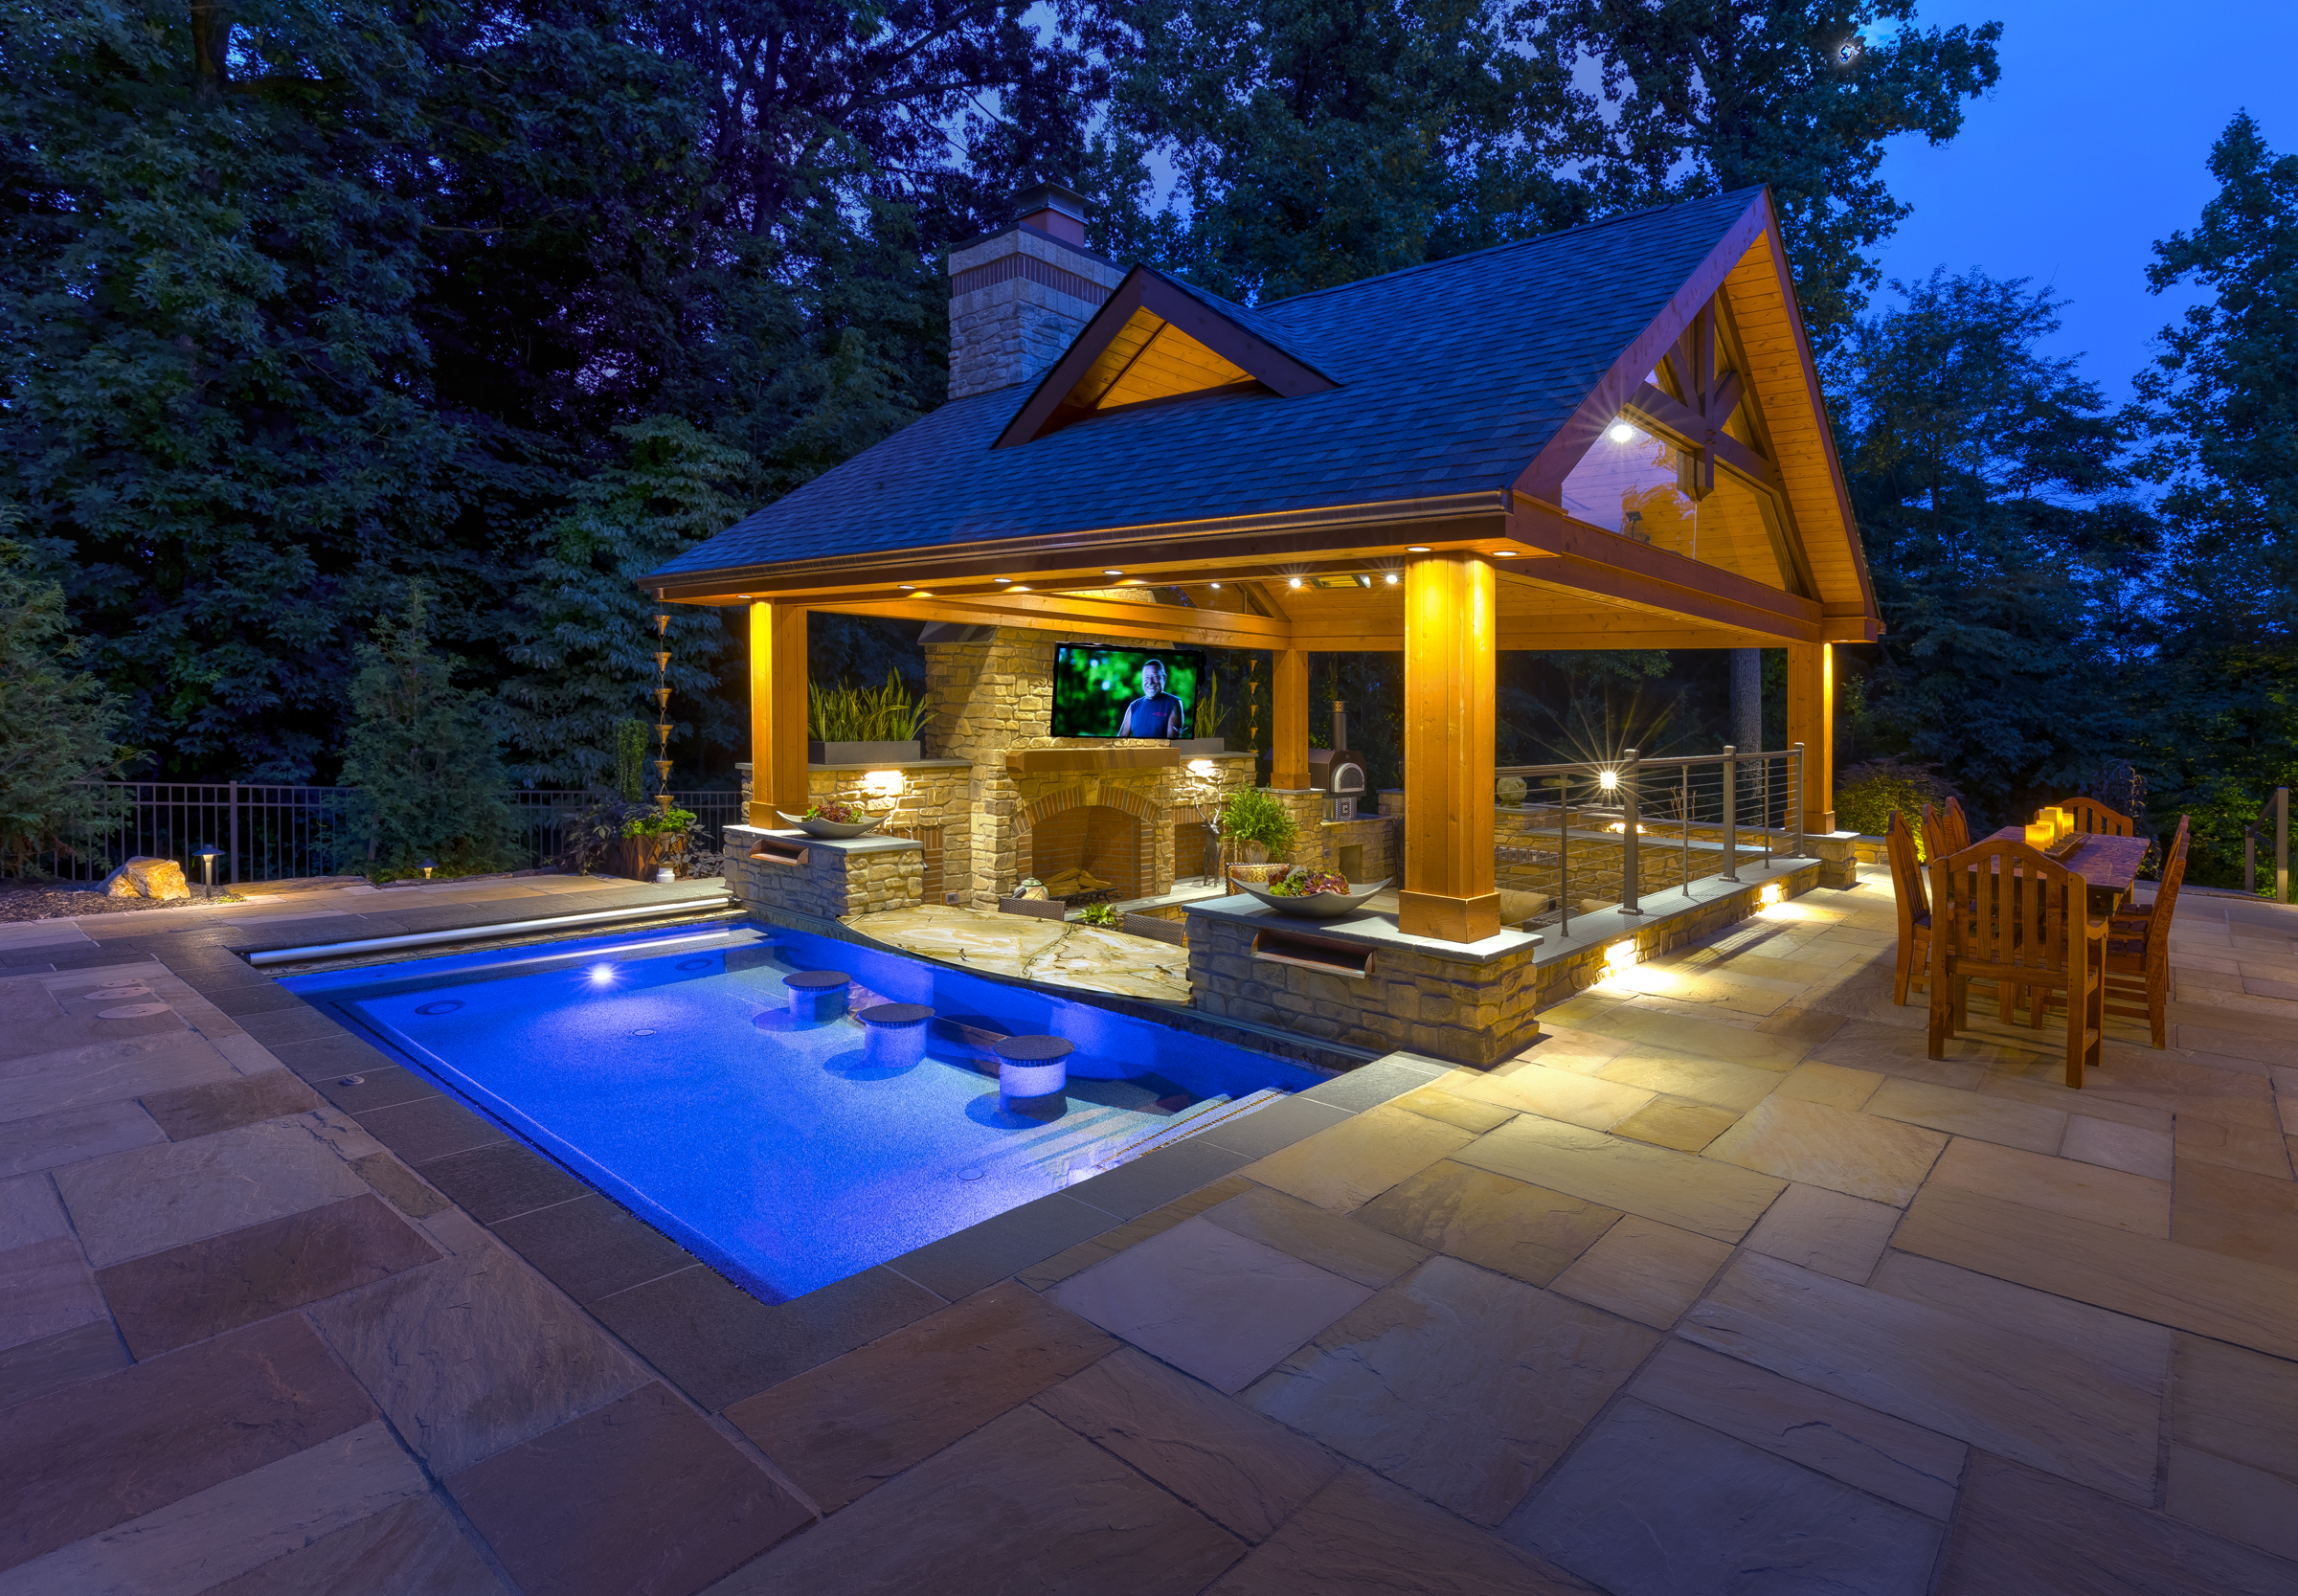 Custom Gunite Spa with Outdoor Living Area in Central PA on Outdoor Living Spa id=70586